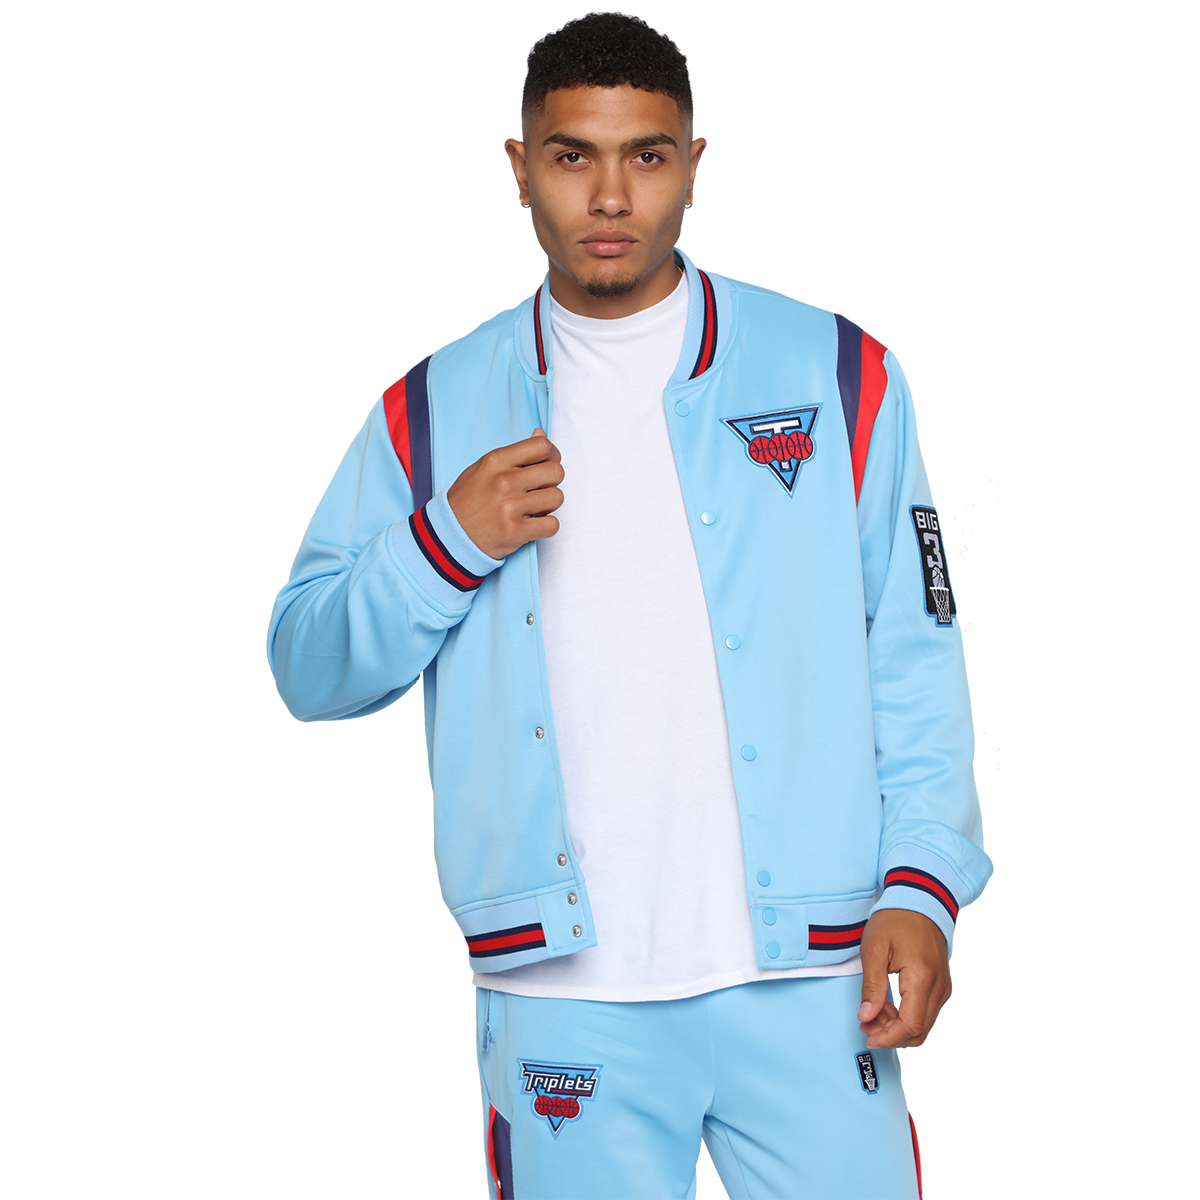 Team Triplets Jacket - Blue/Combo